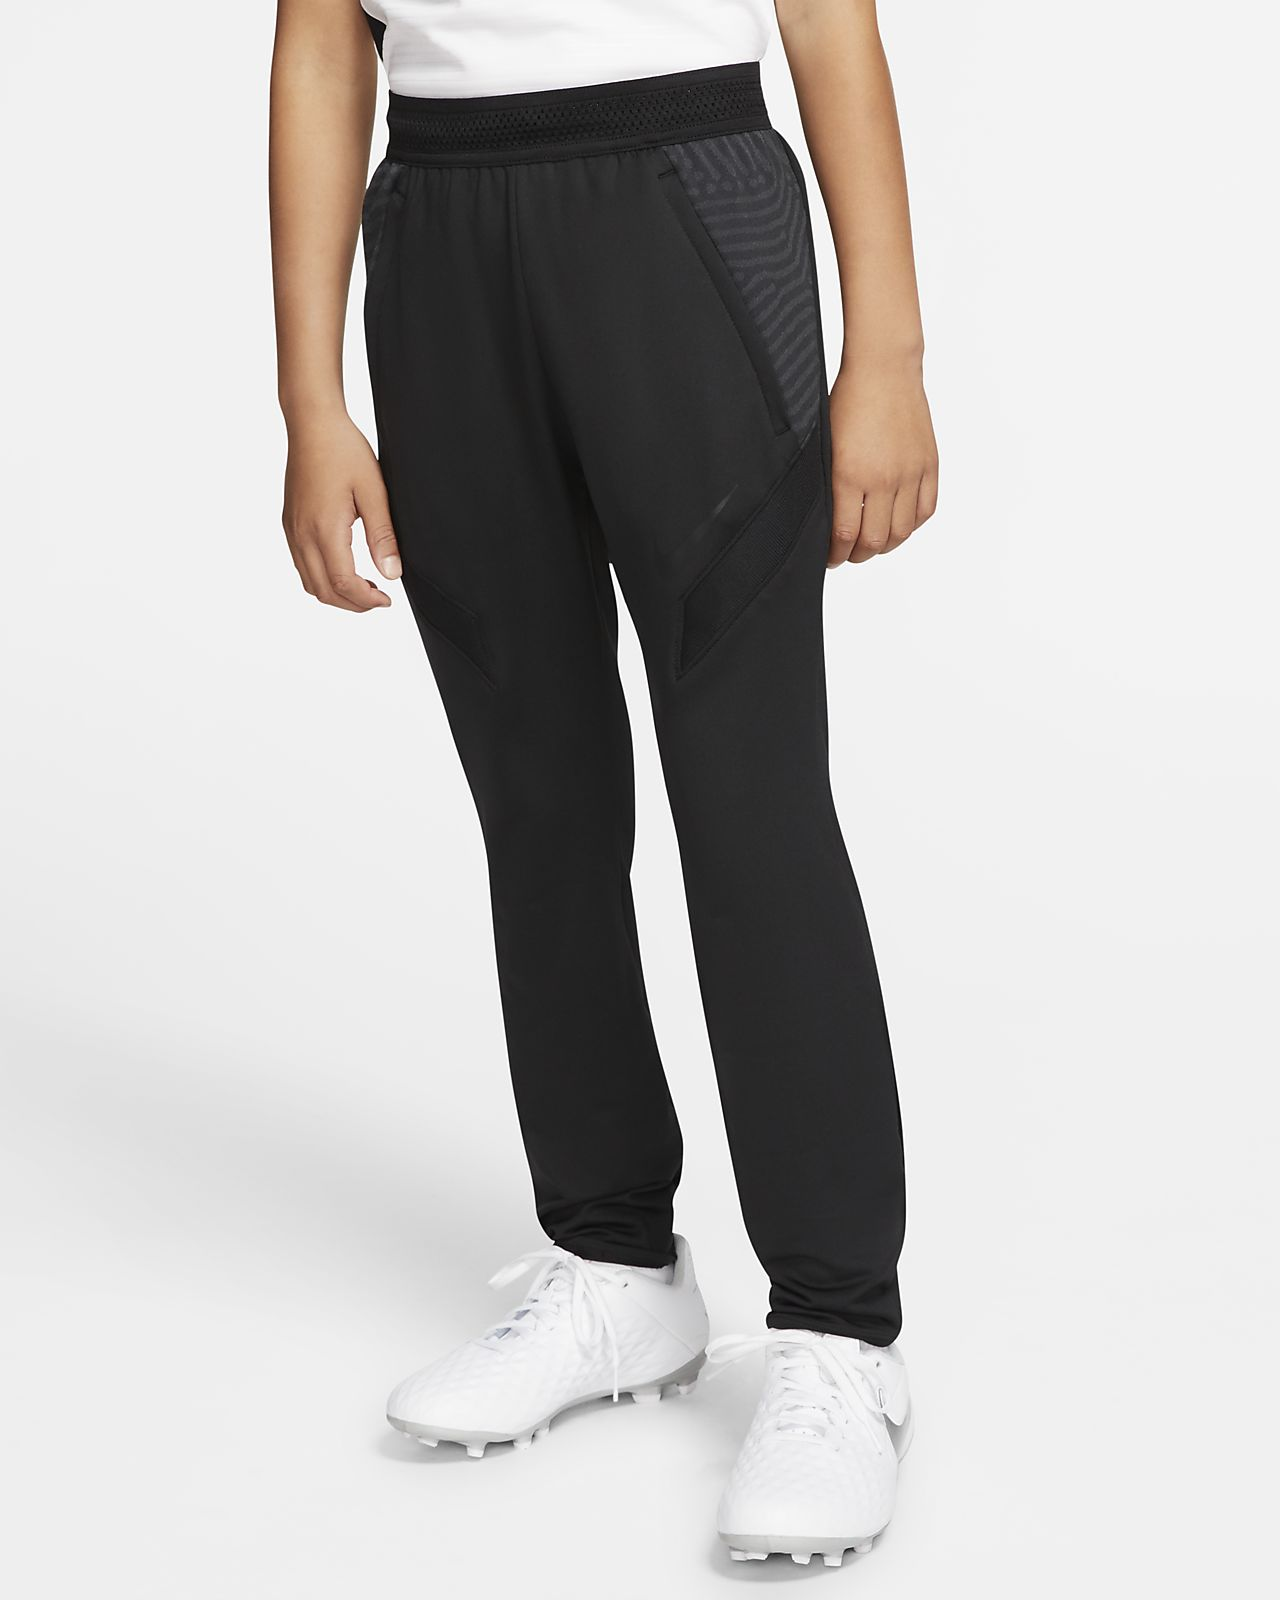 Pantalon de football Nike Dri-FIT Strike pour Enfant plus âgé